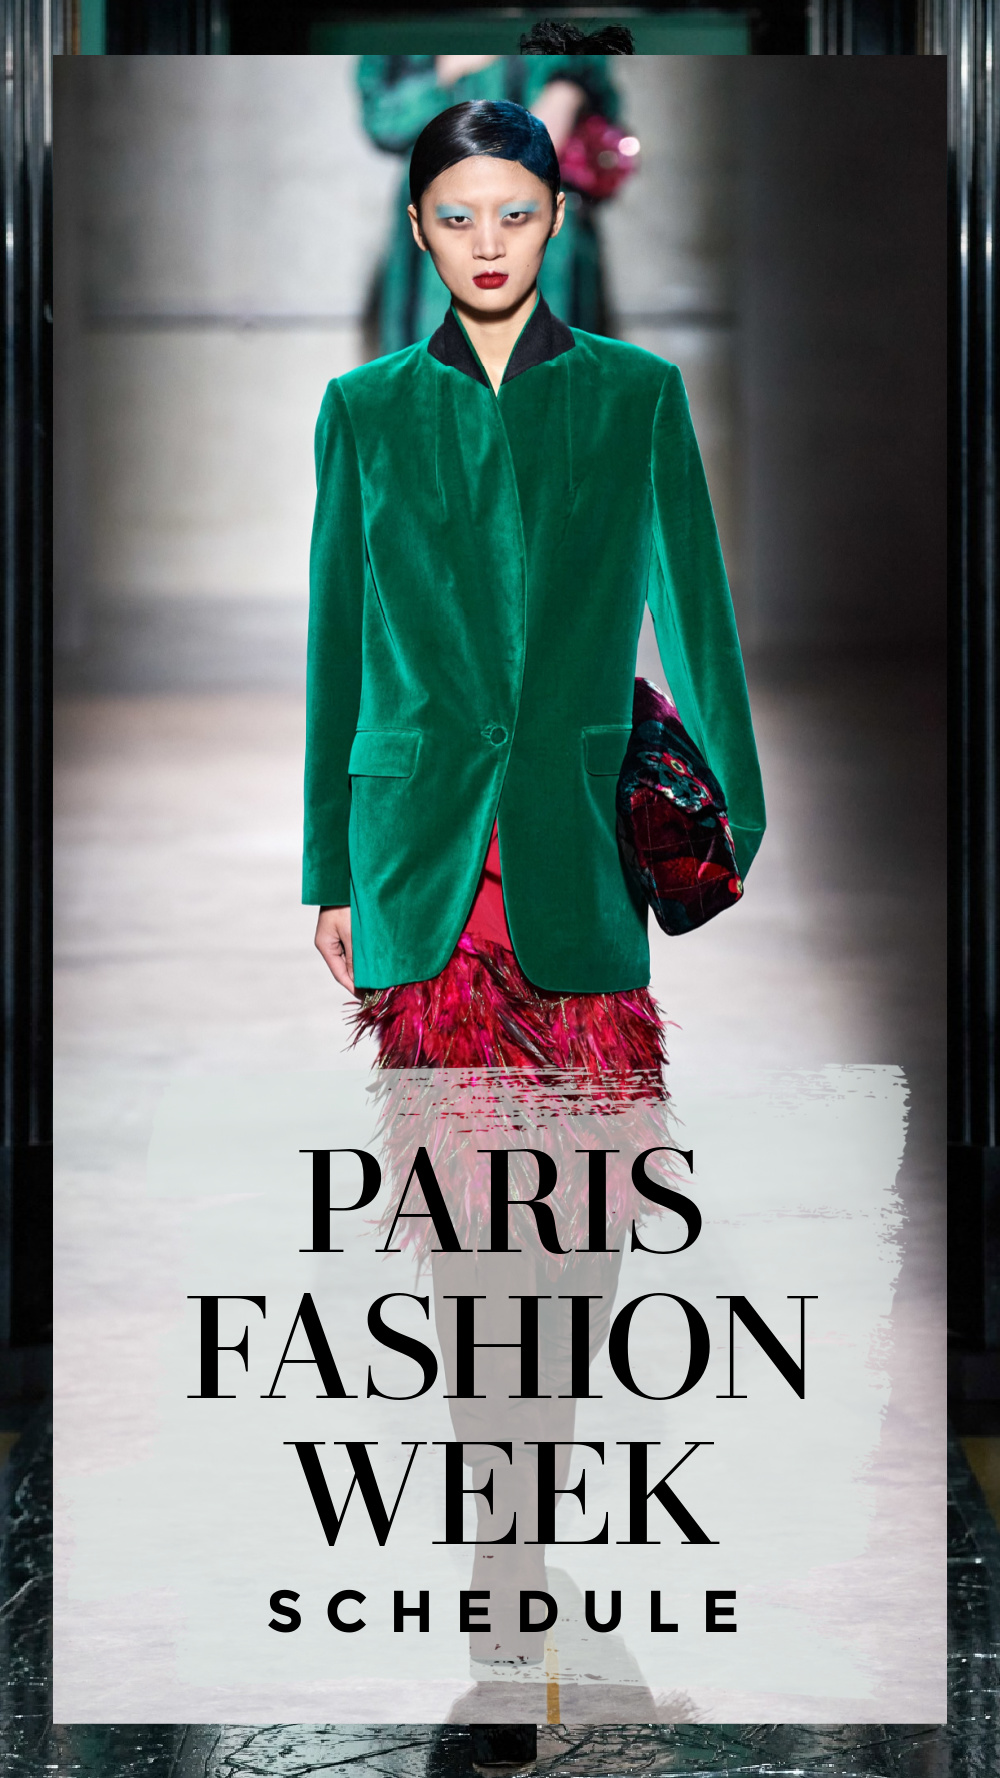 The Official PFW Fall 2021 schedule includes a mix of digital and limited in-person events. I DreaminLace.com #FashionWeek #ParisFashion #LuxuryFashion